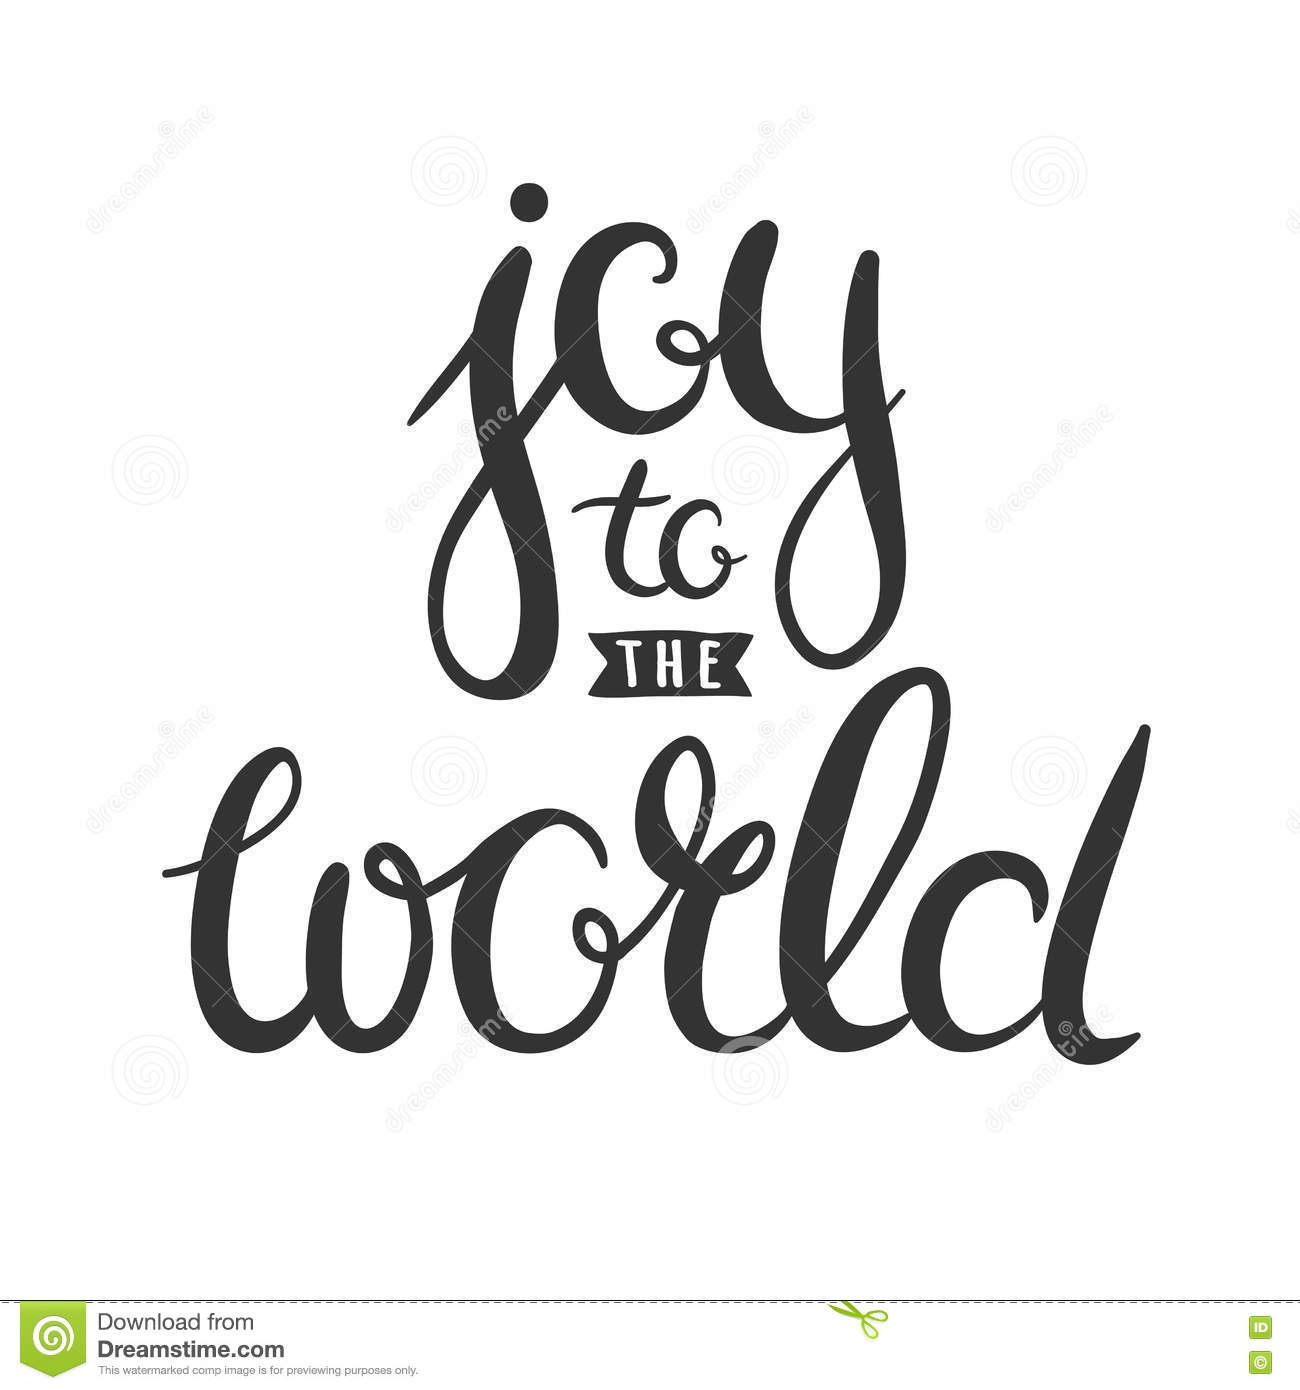 Joy to the world handwritten in calligraphy stock vector